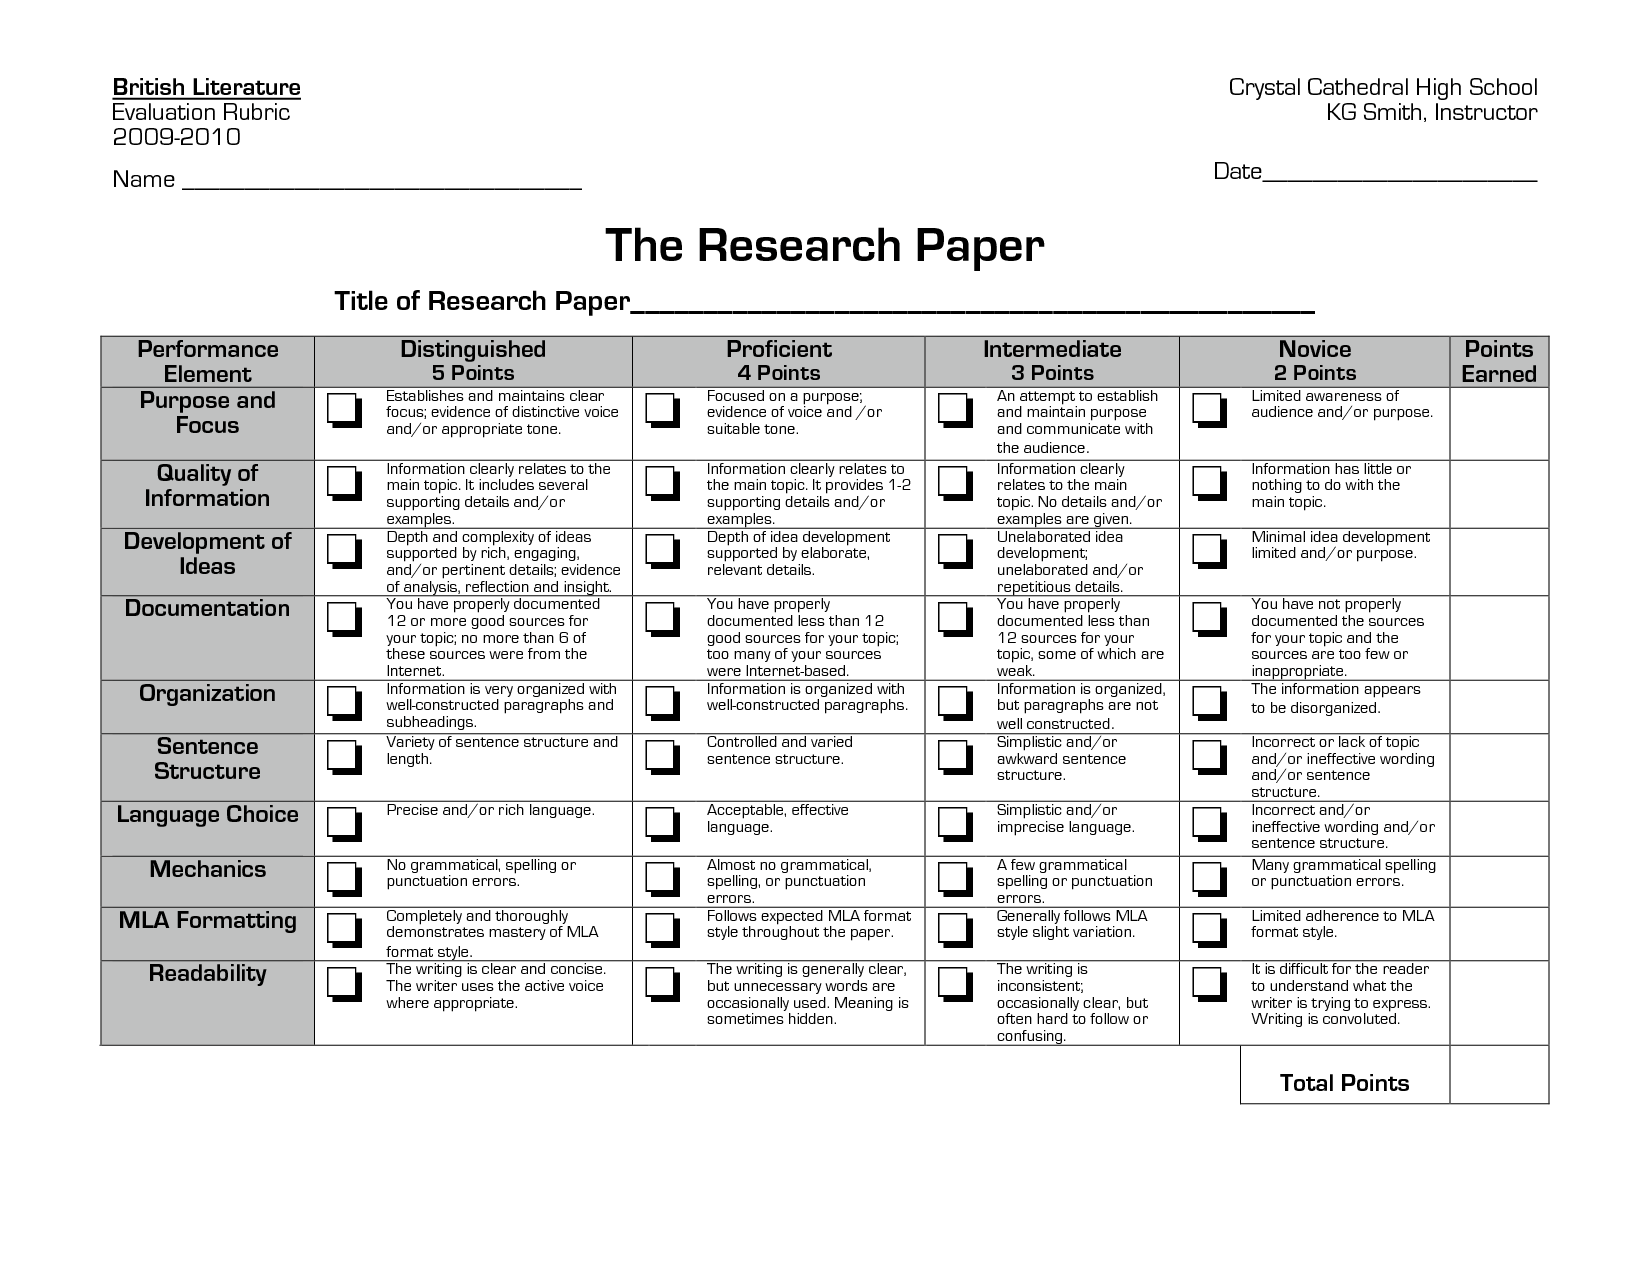 scoring rubrics in writing a research paper